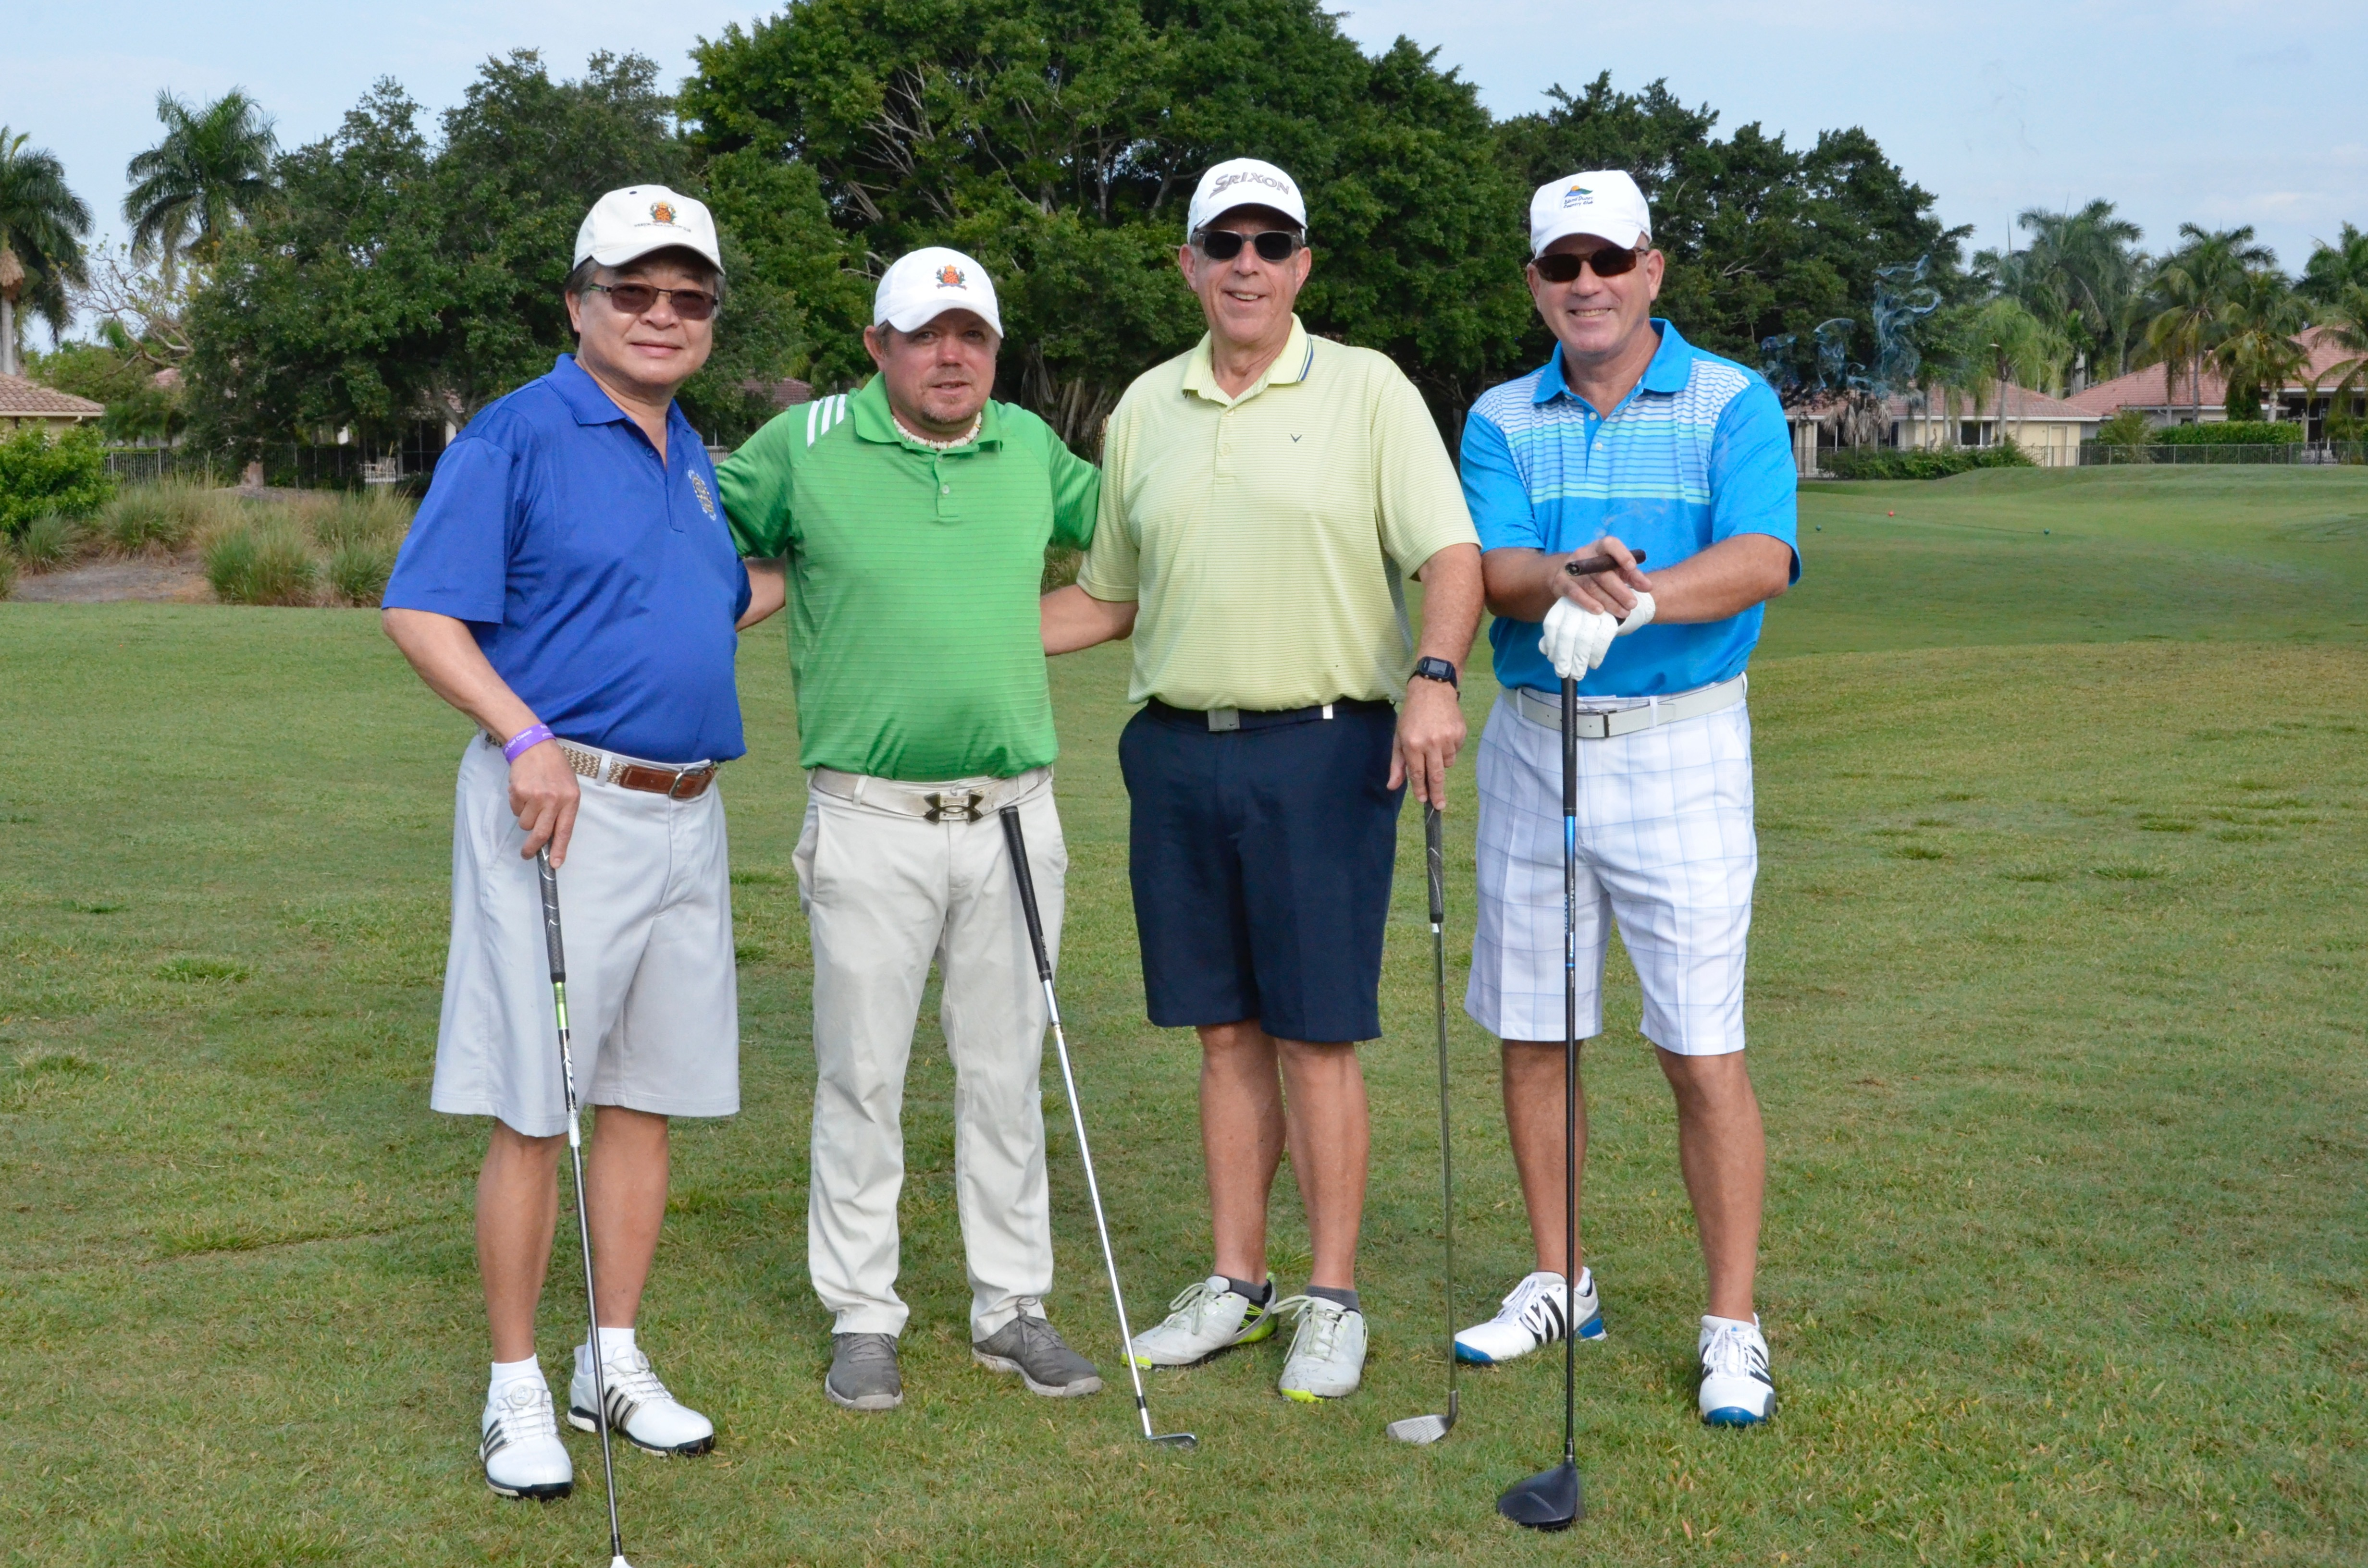 33rd Annual Rotary Golf Classic Sponsored by FHVLEGAL.COM gallery image #56